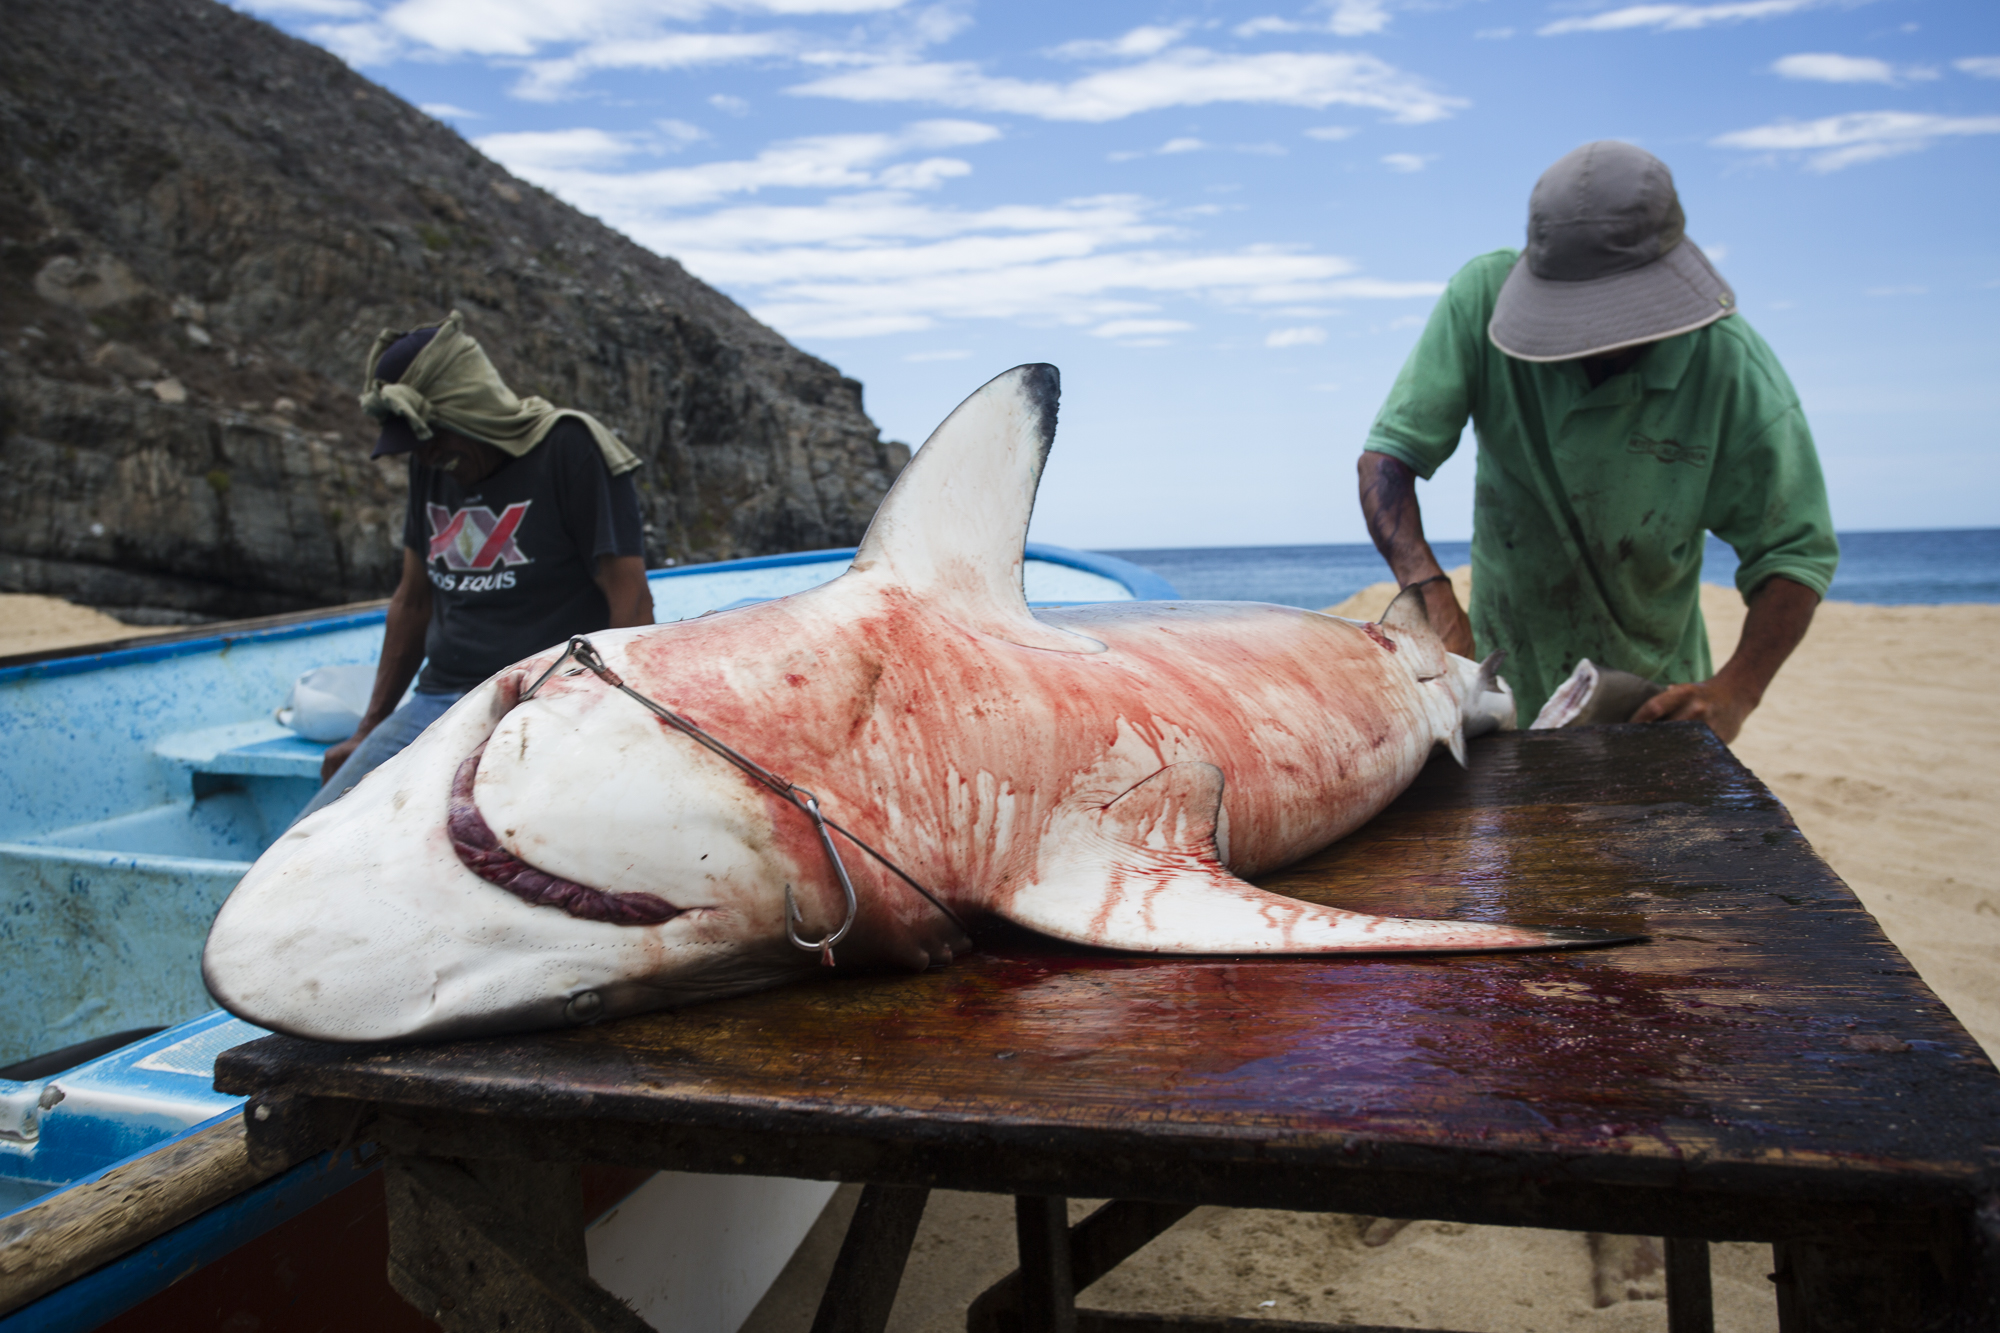 Jose Cota (right) fins a large silky shark, he makes a living gutting and cleaning sharks for the fishermen, working around 8 hours a day on the beach for 600$ Mexican Pesos or less ($32 US). The meat of the sharks he guts is sold for $2.60 US a kilogram, while the fishermen sell the fins for $40 US a kilogram; a shark this size can have around 40kg of meat and 2-3kg of fins.